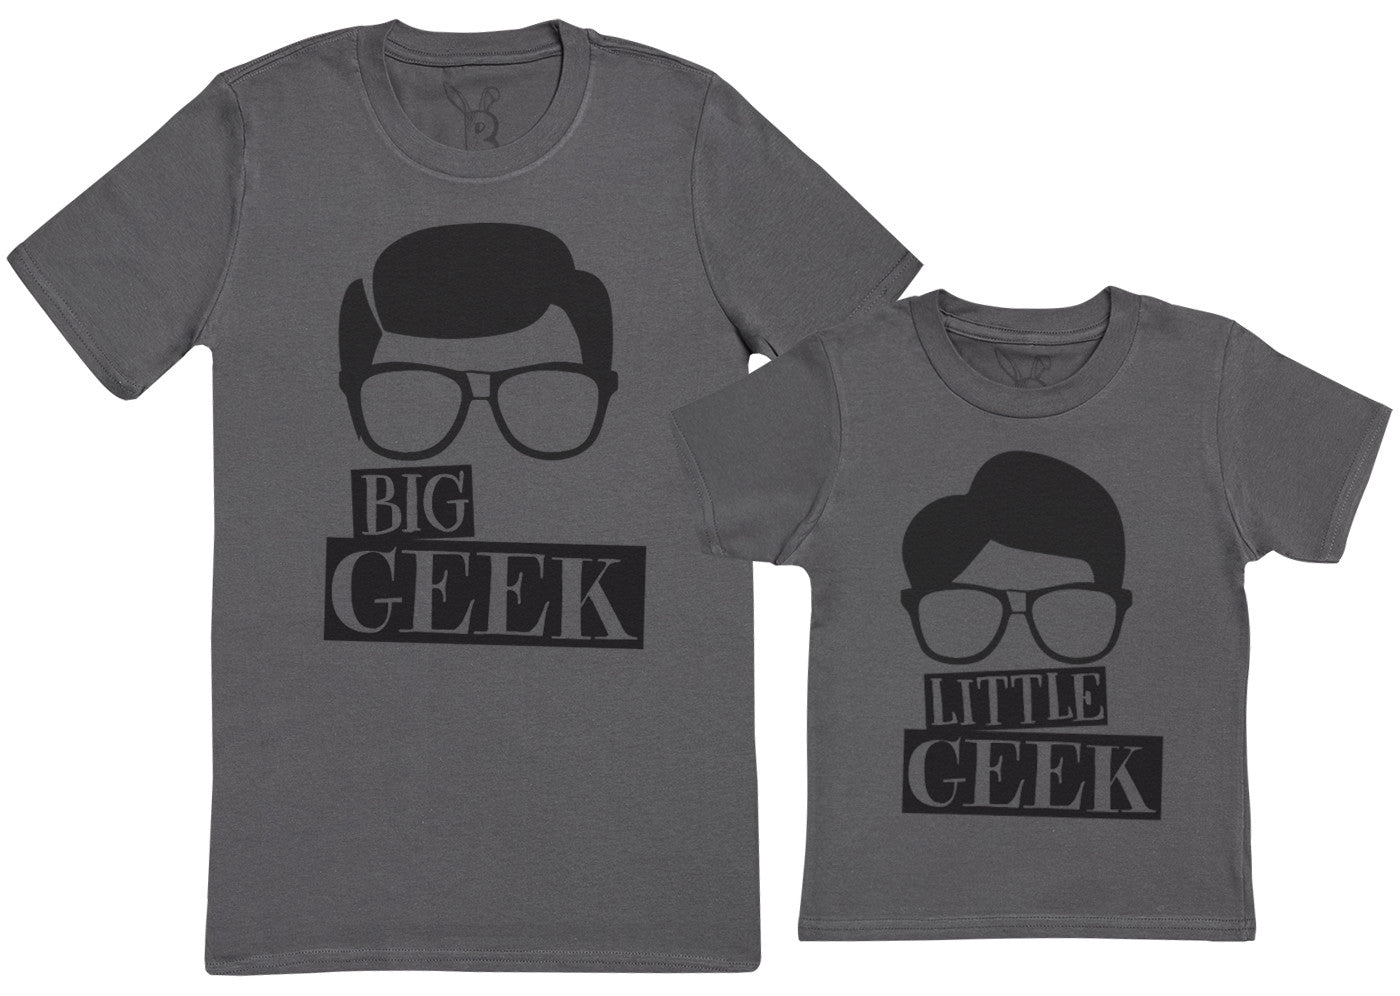 Big Geek & Little Geek - Kid's Gift Set with Kid's T-Shirt & Father's T-Shirt